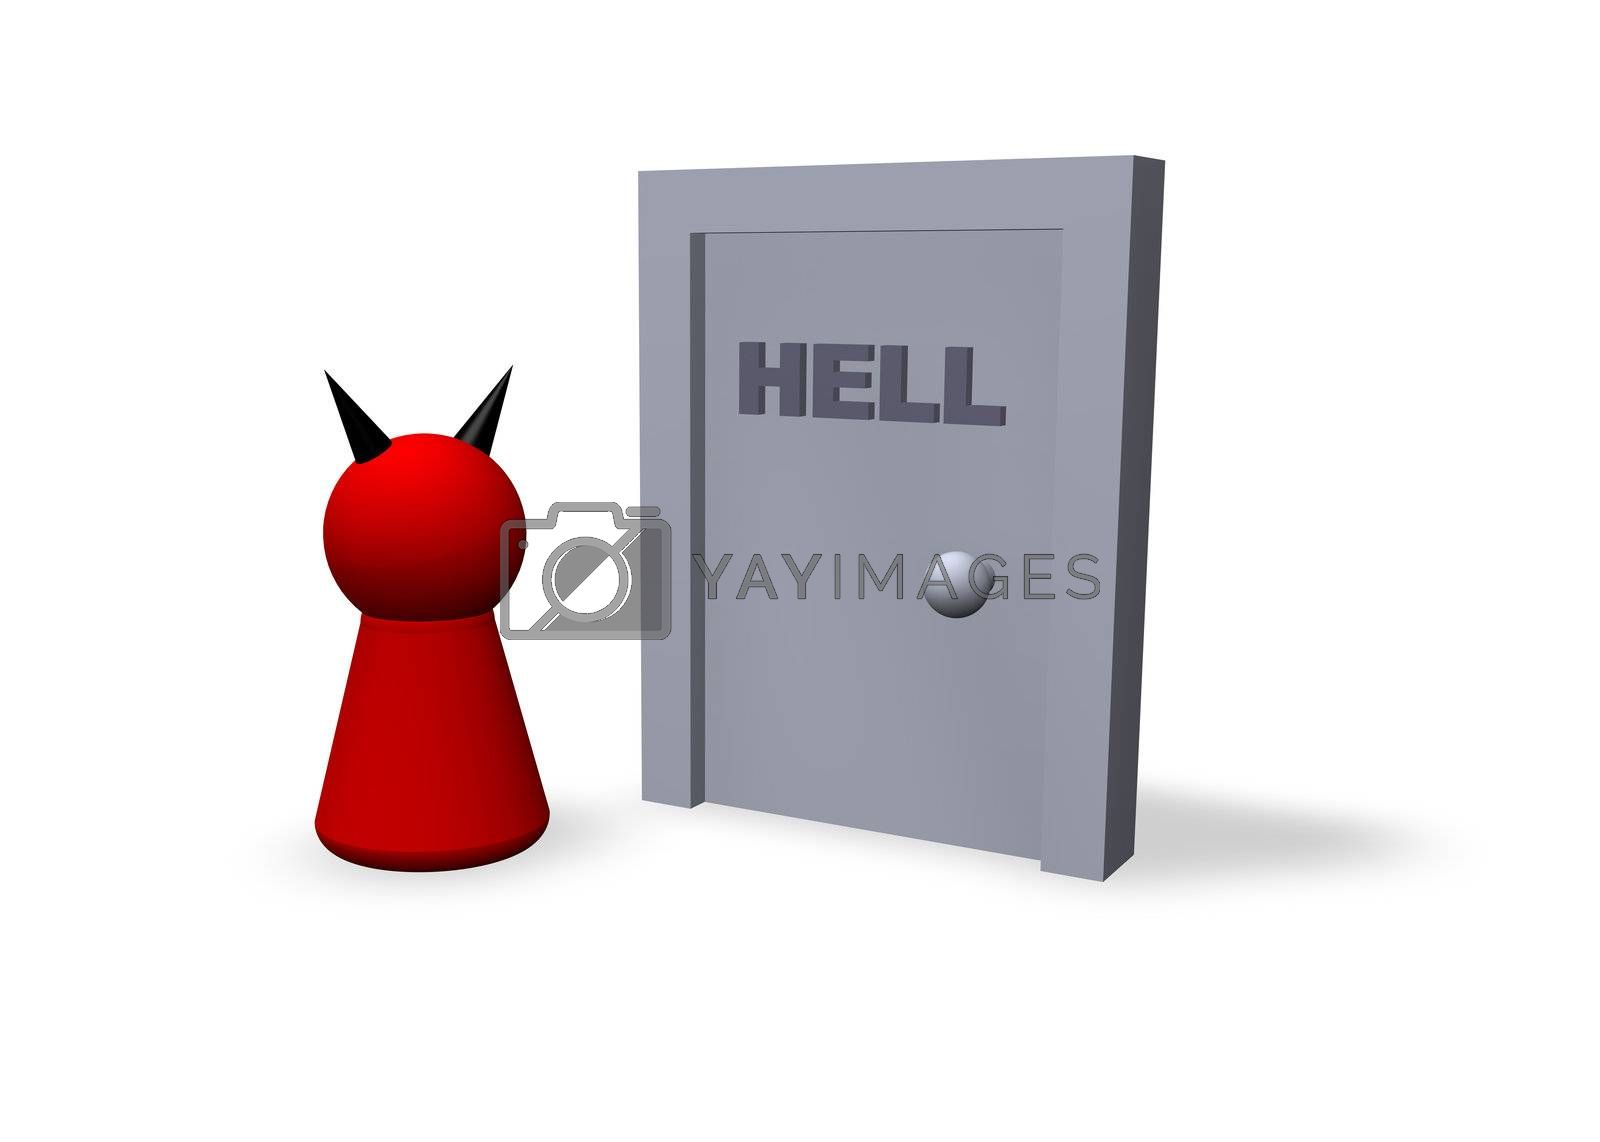 play figure satan and gate to hell